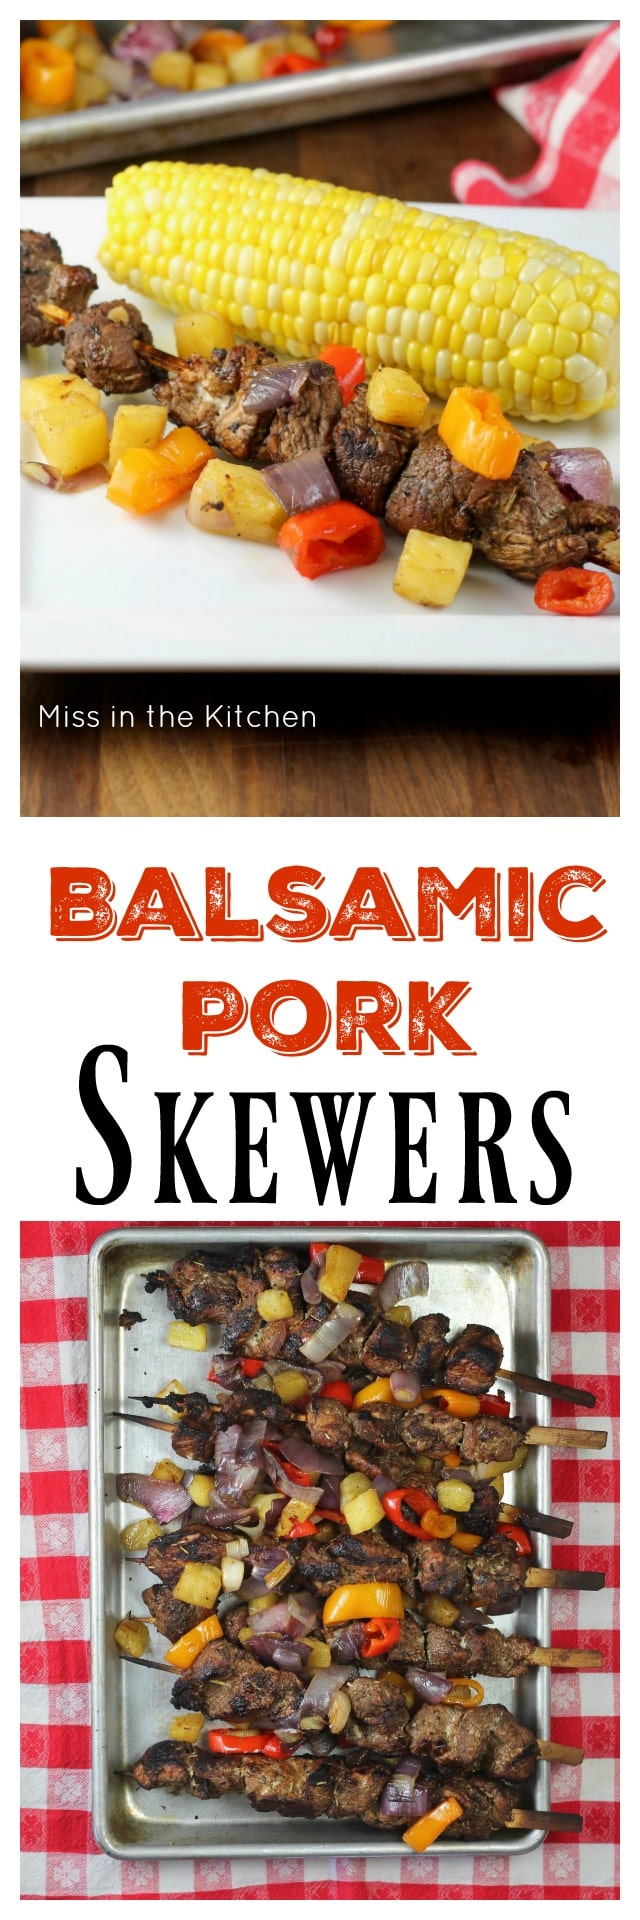 Balsamic Pork Skewers Recipe perfect for summer grilling from MissintheKitchen.com